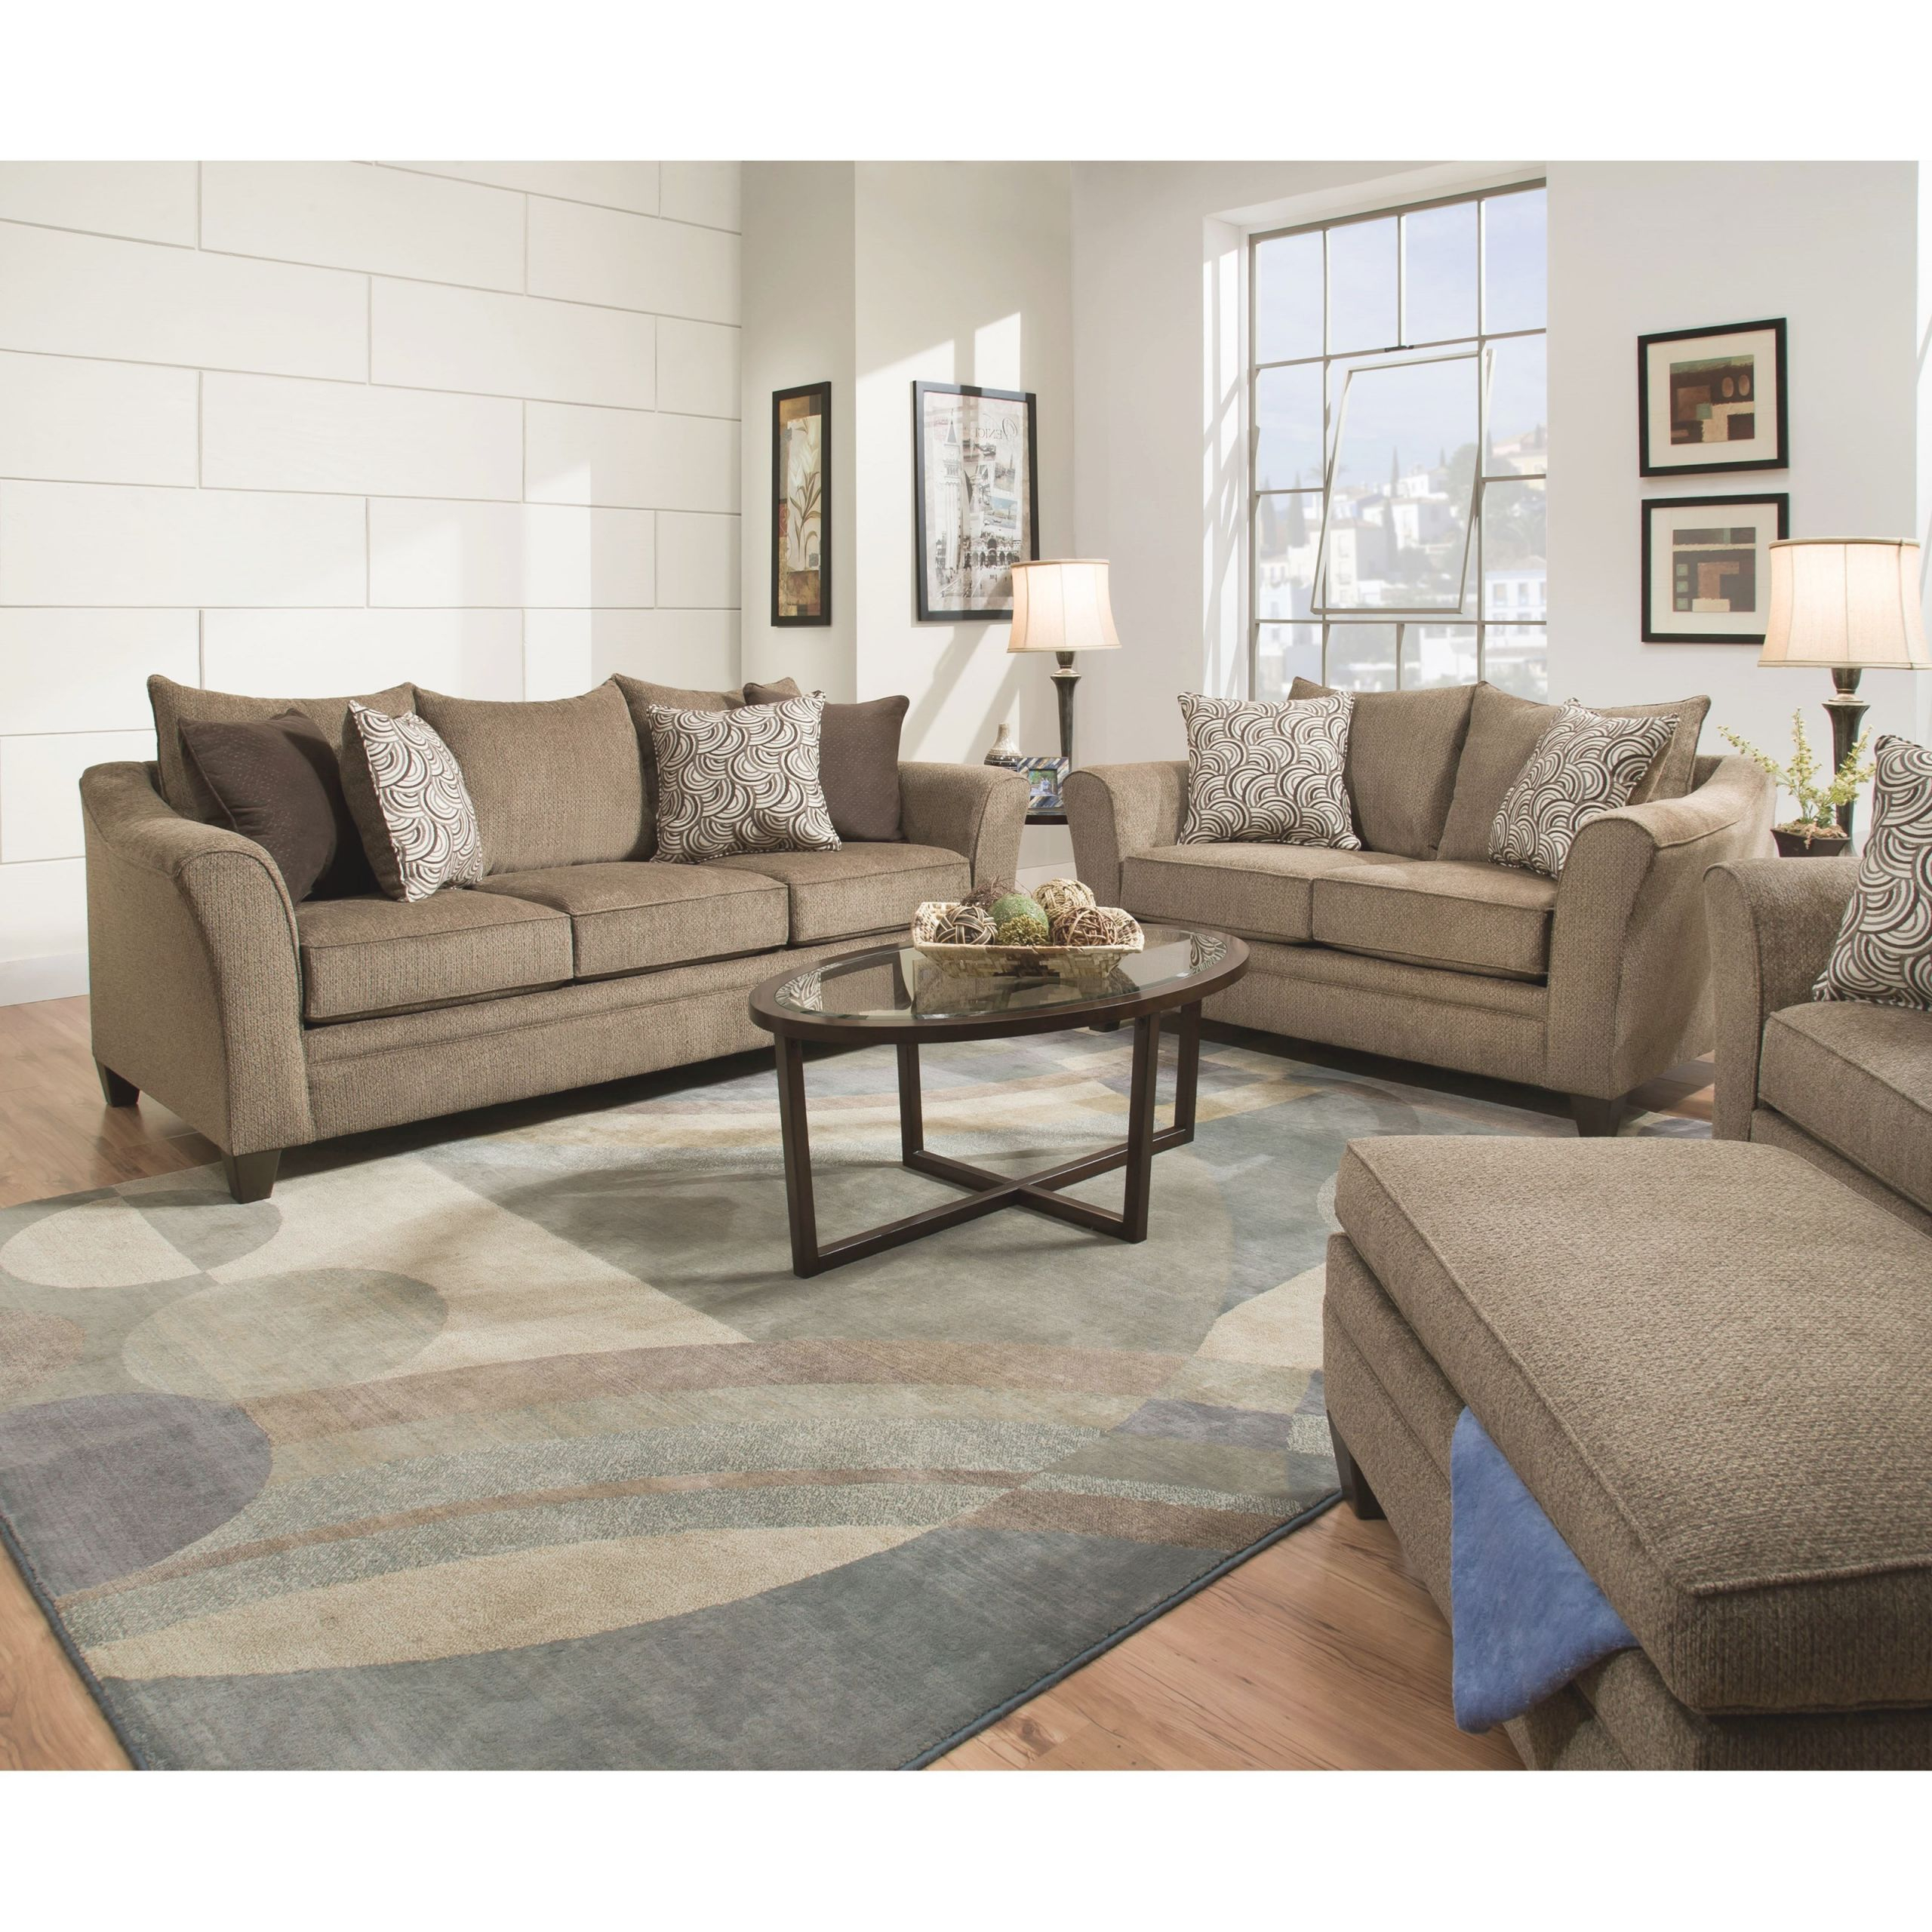 6485 Living Room Groupsimmons Upholstery At Royal Furniture regarding New Simmons Living Room Furniture